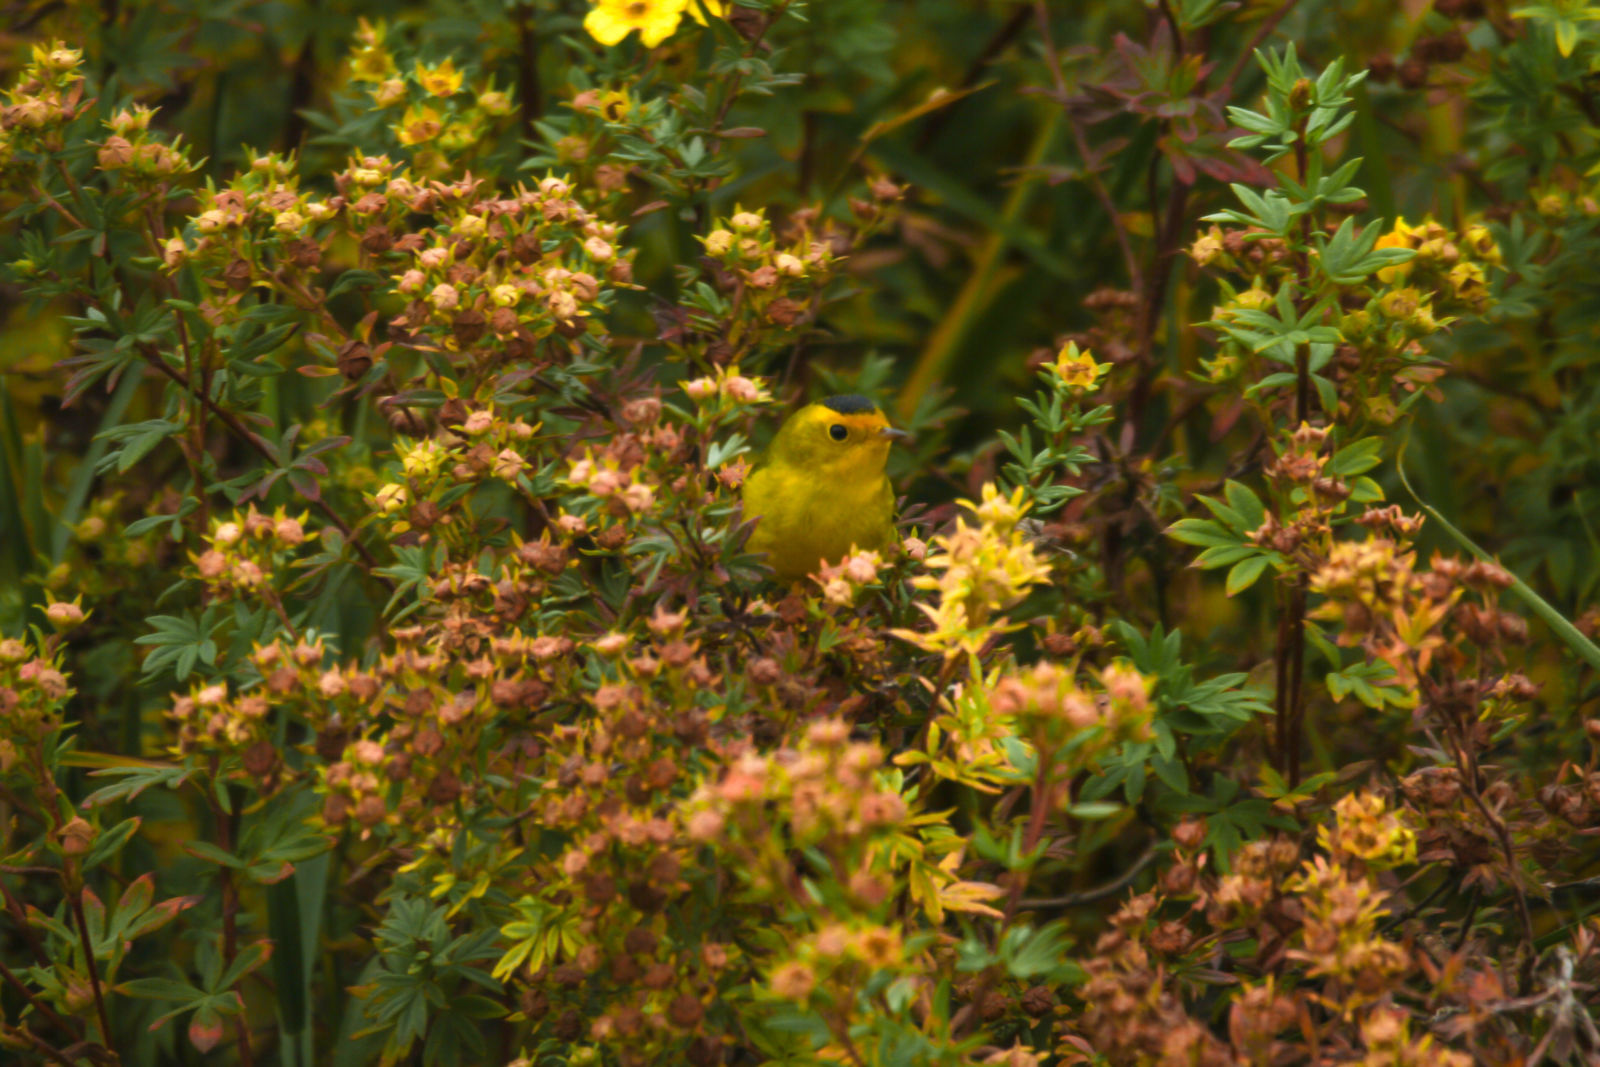 Yellow Warbler, near Salmon Lake